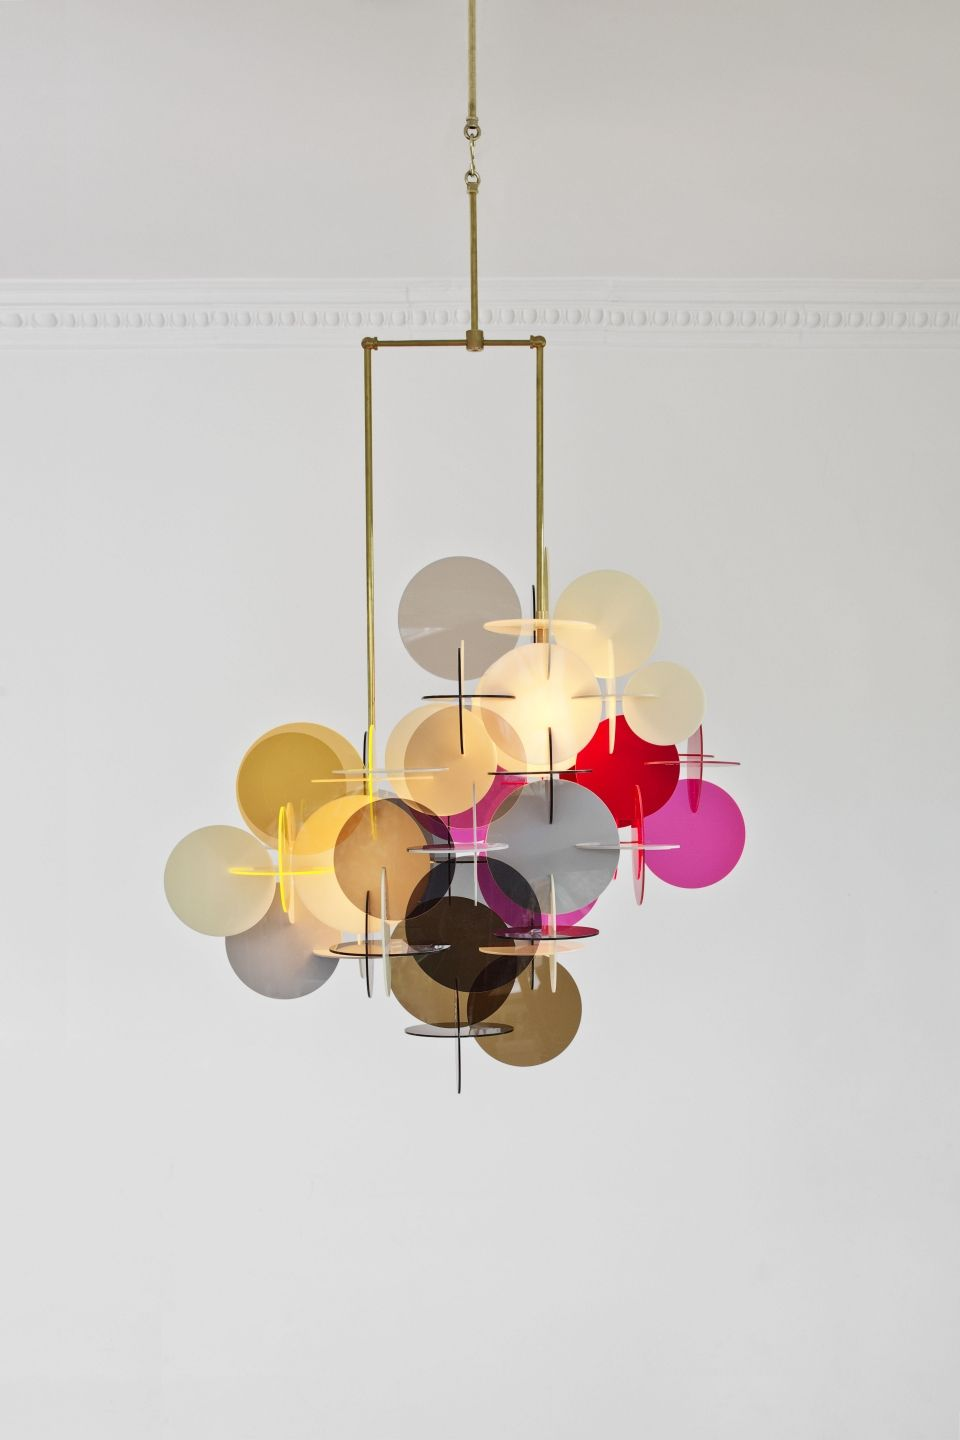 Ceiling Lights & Fans Objective Nordic Vertical 3 Light Glass Globe Lustre Chandelier Sofa Side Luminarias Led Pendant Chandelier Indoor Suspend Lamp Fixtures